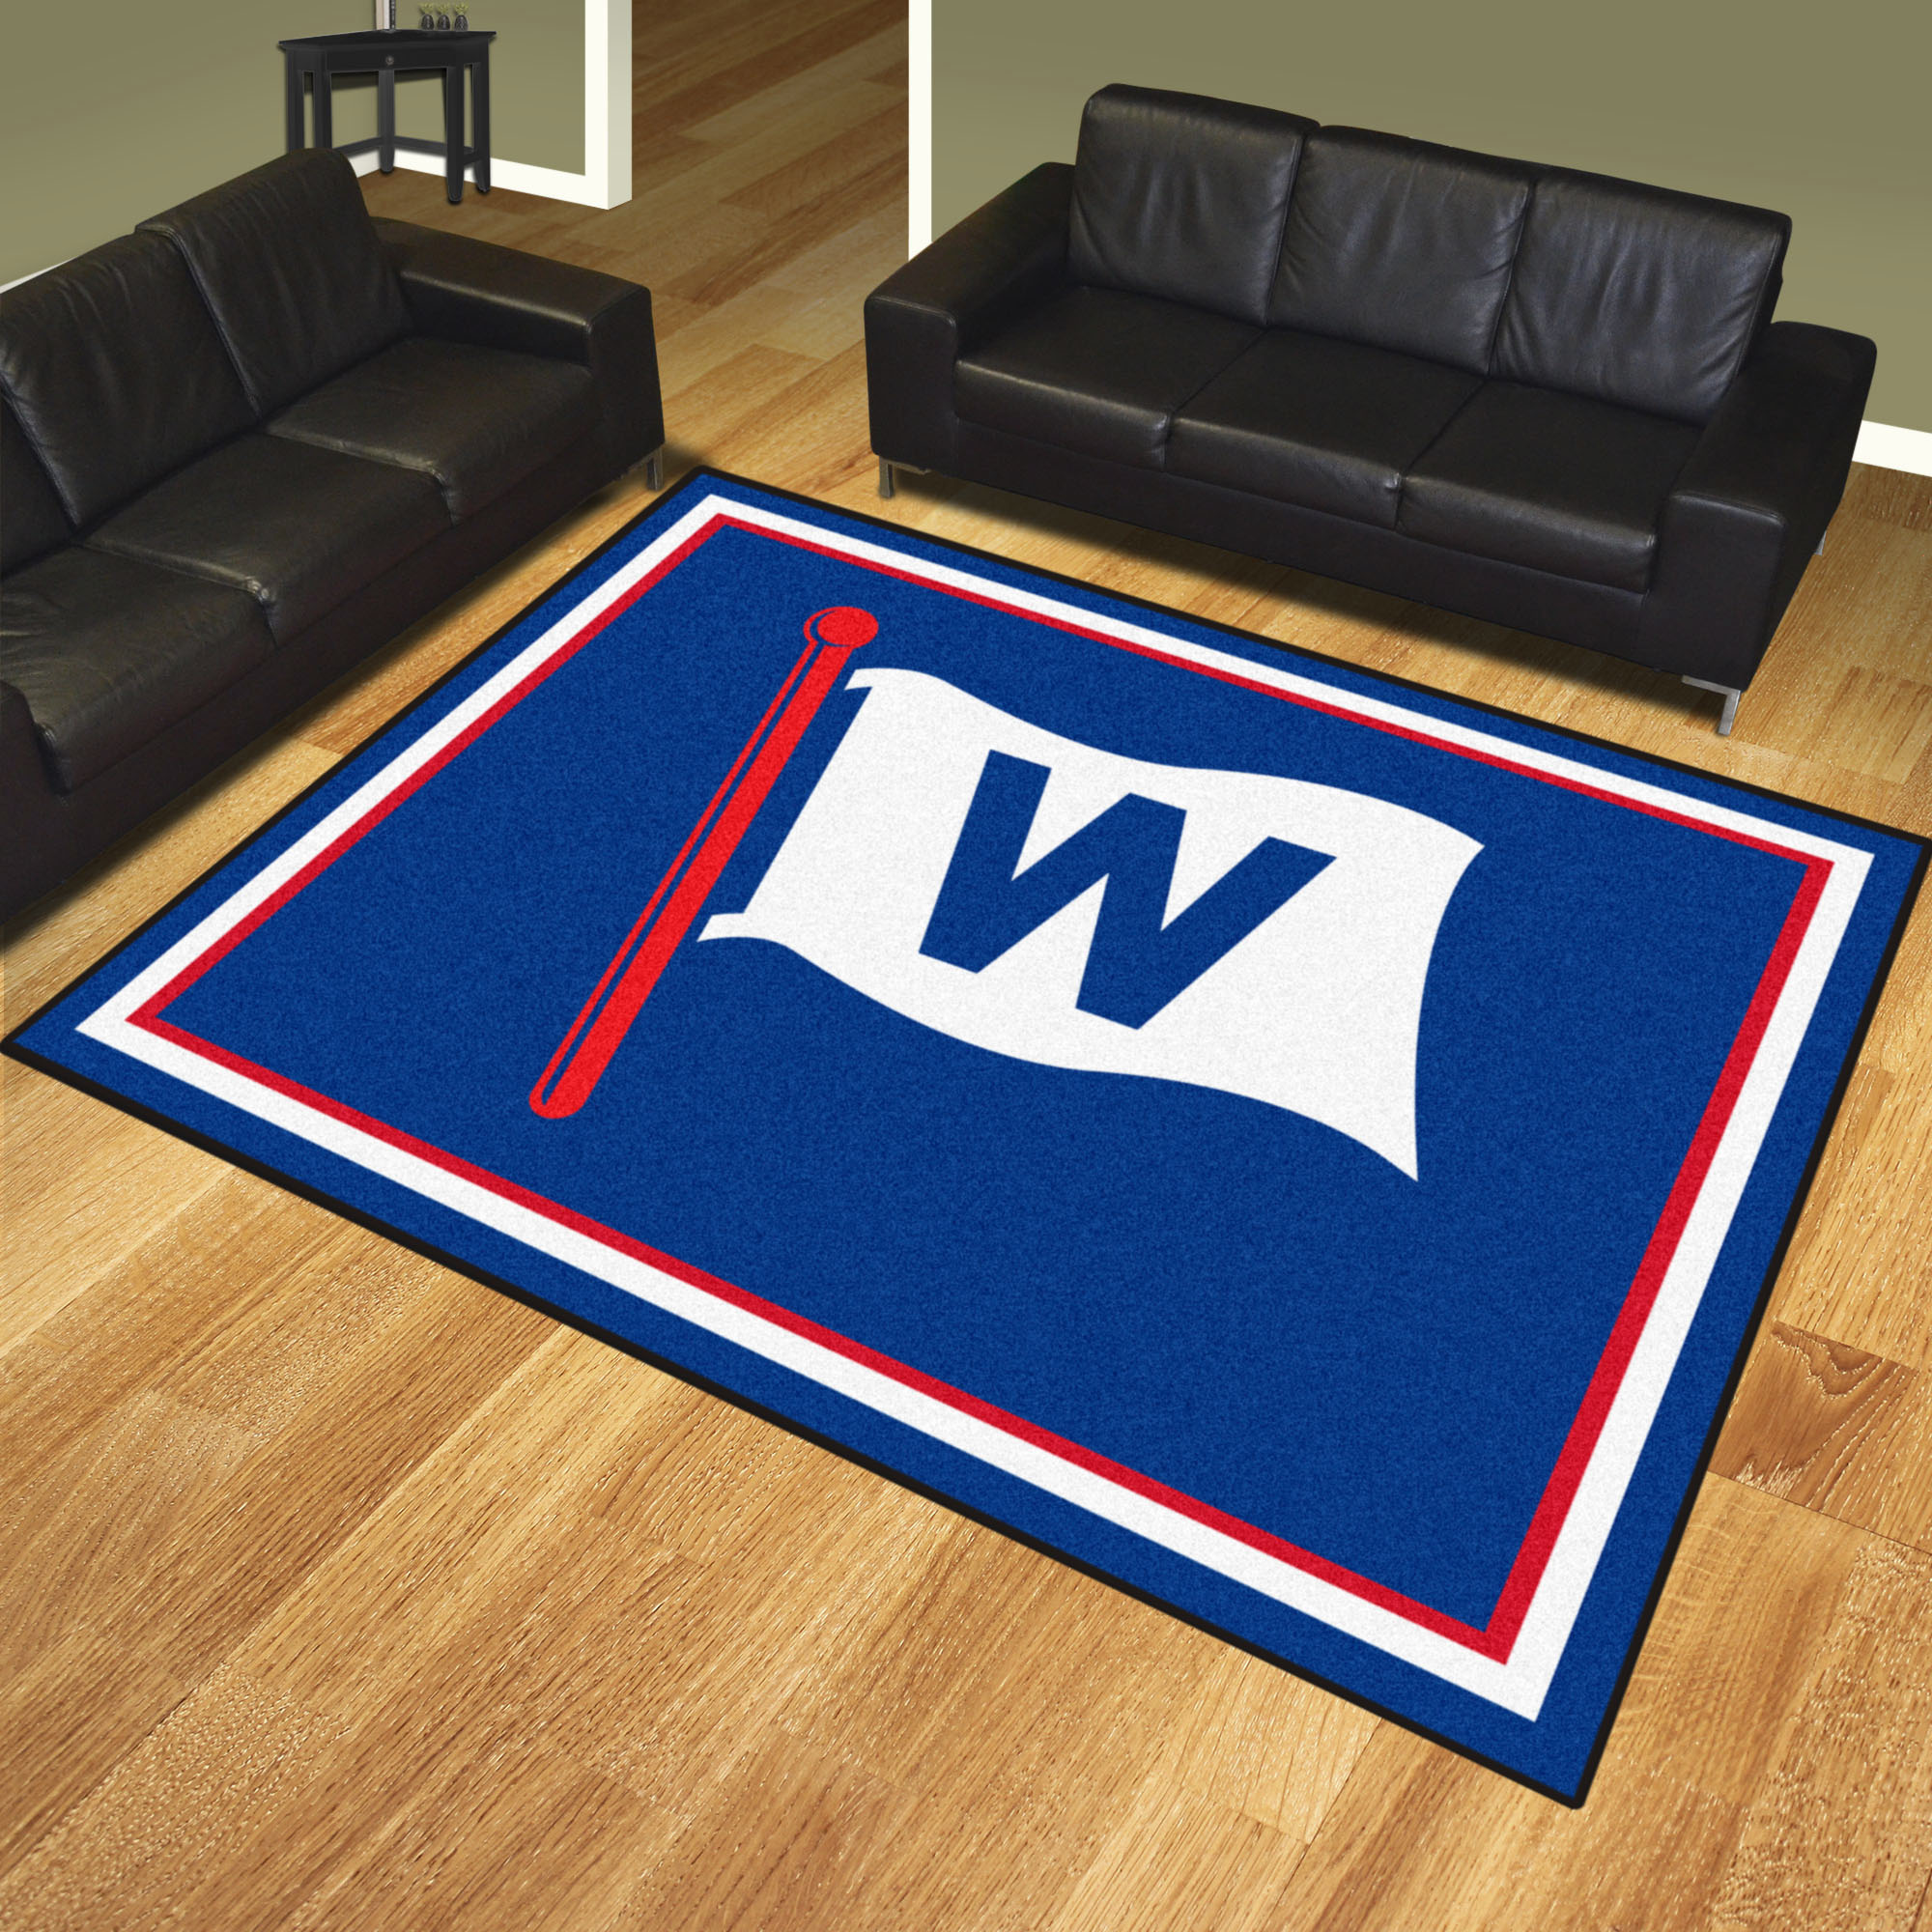 Chicago Cubs FLY THE W Ultra Plush 8x10 Area Rug